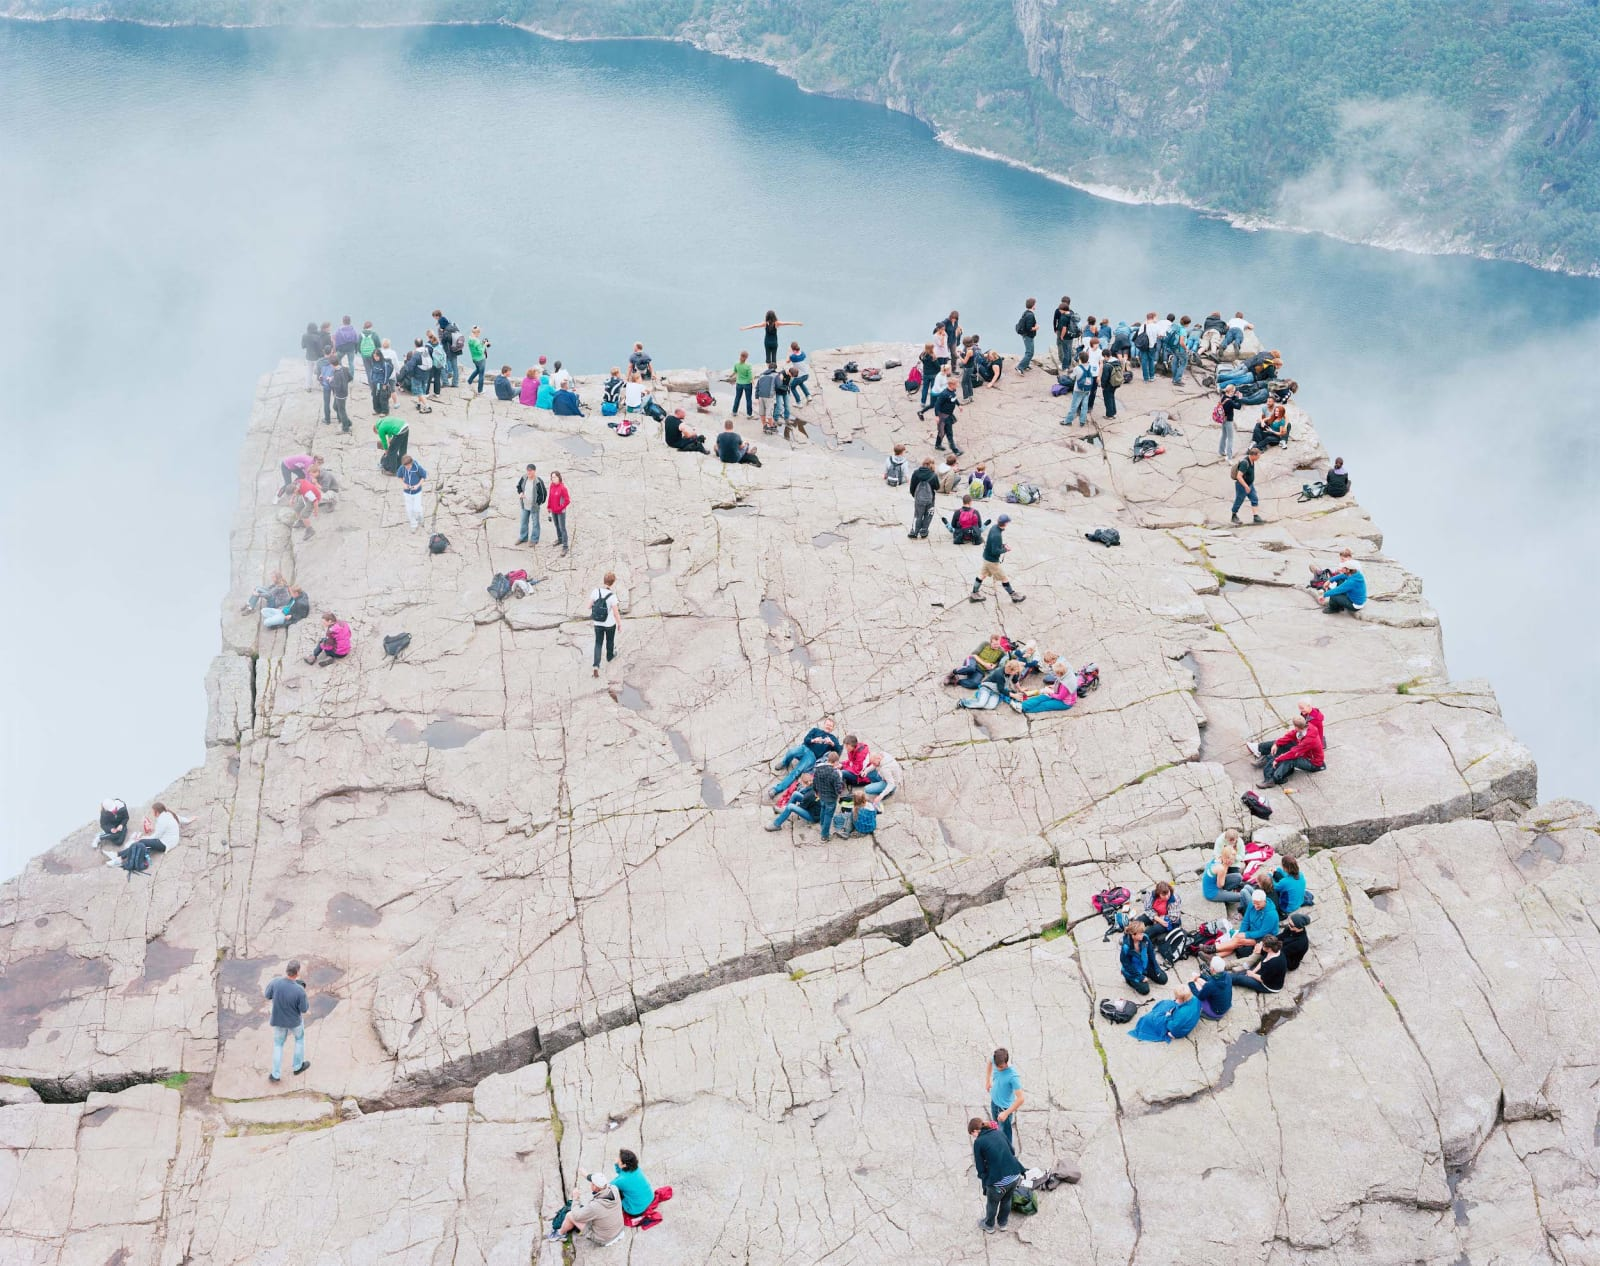 Groups of hikers on very tall cliff at Pulpit Rock above steaming water, Preikestolen Norway, by Massimo Vitali